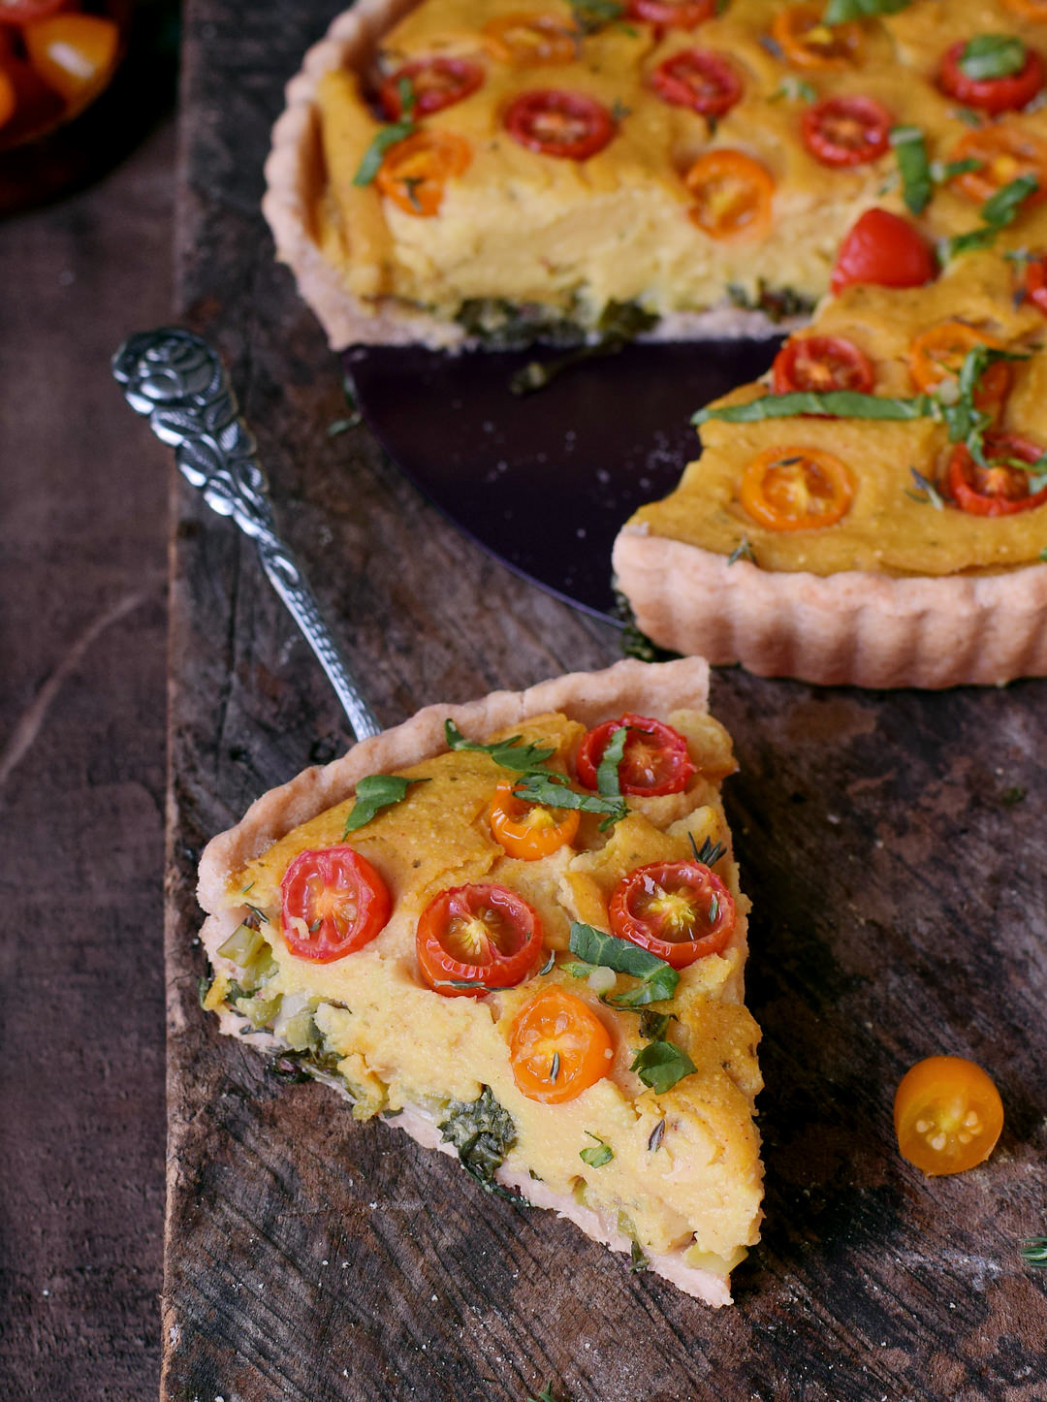 Vegane Quiche (Rezept ohne Ei und ohne Soja) - food recipes quiche